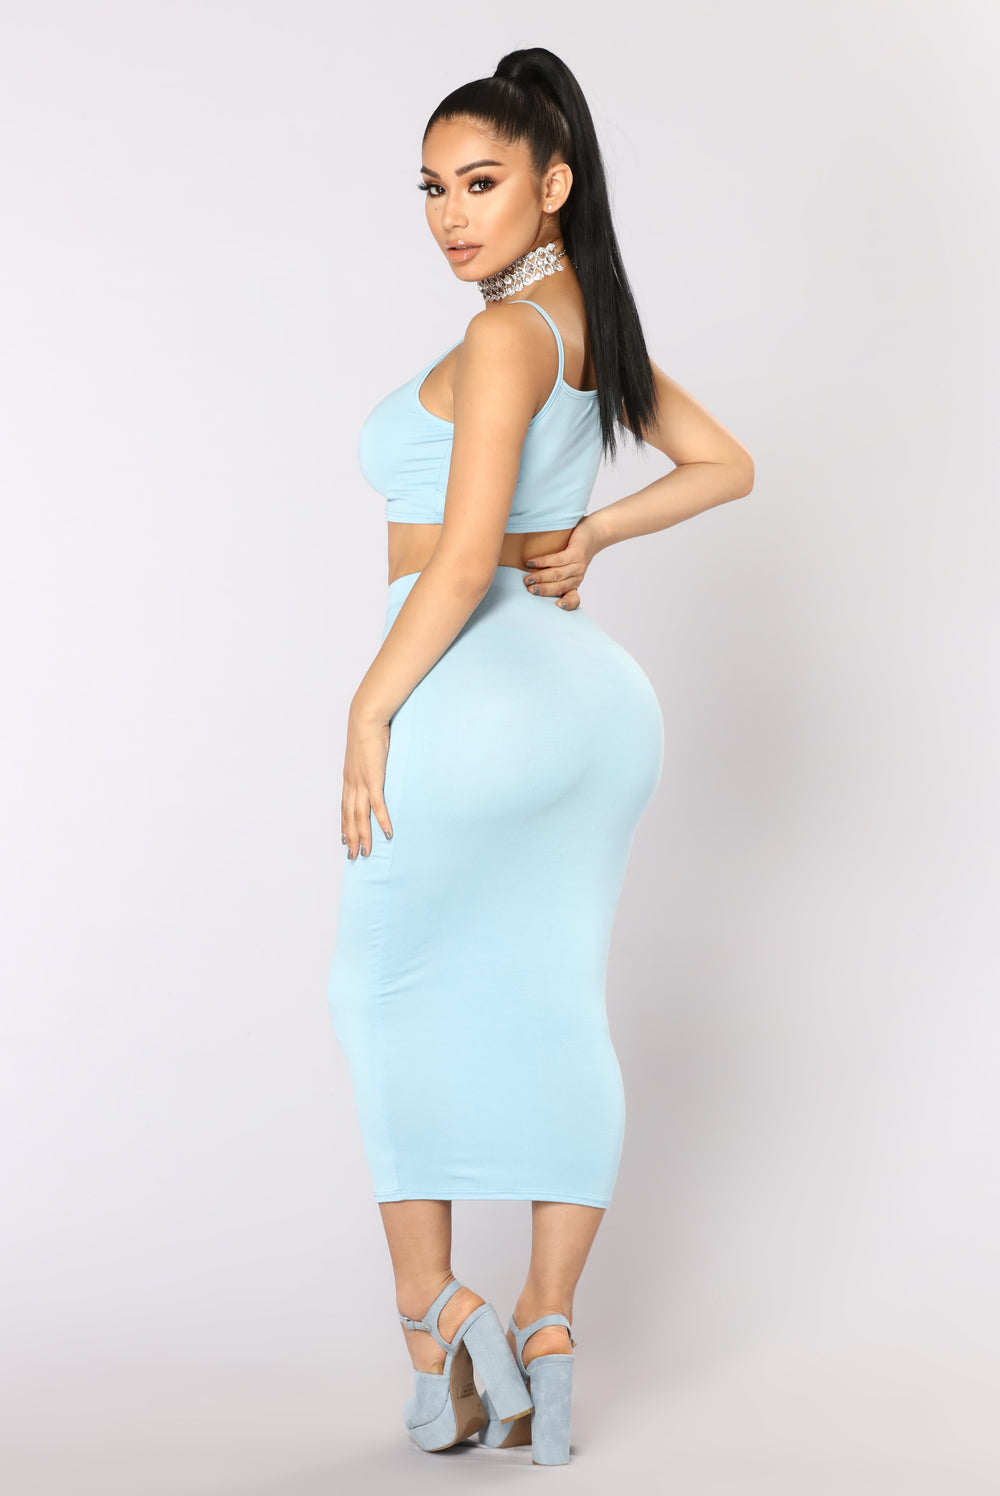 No Manners Skirt Set - Baby Blue